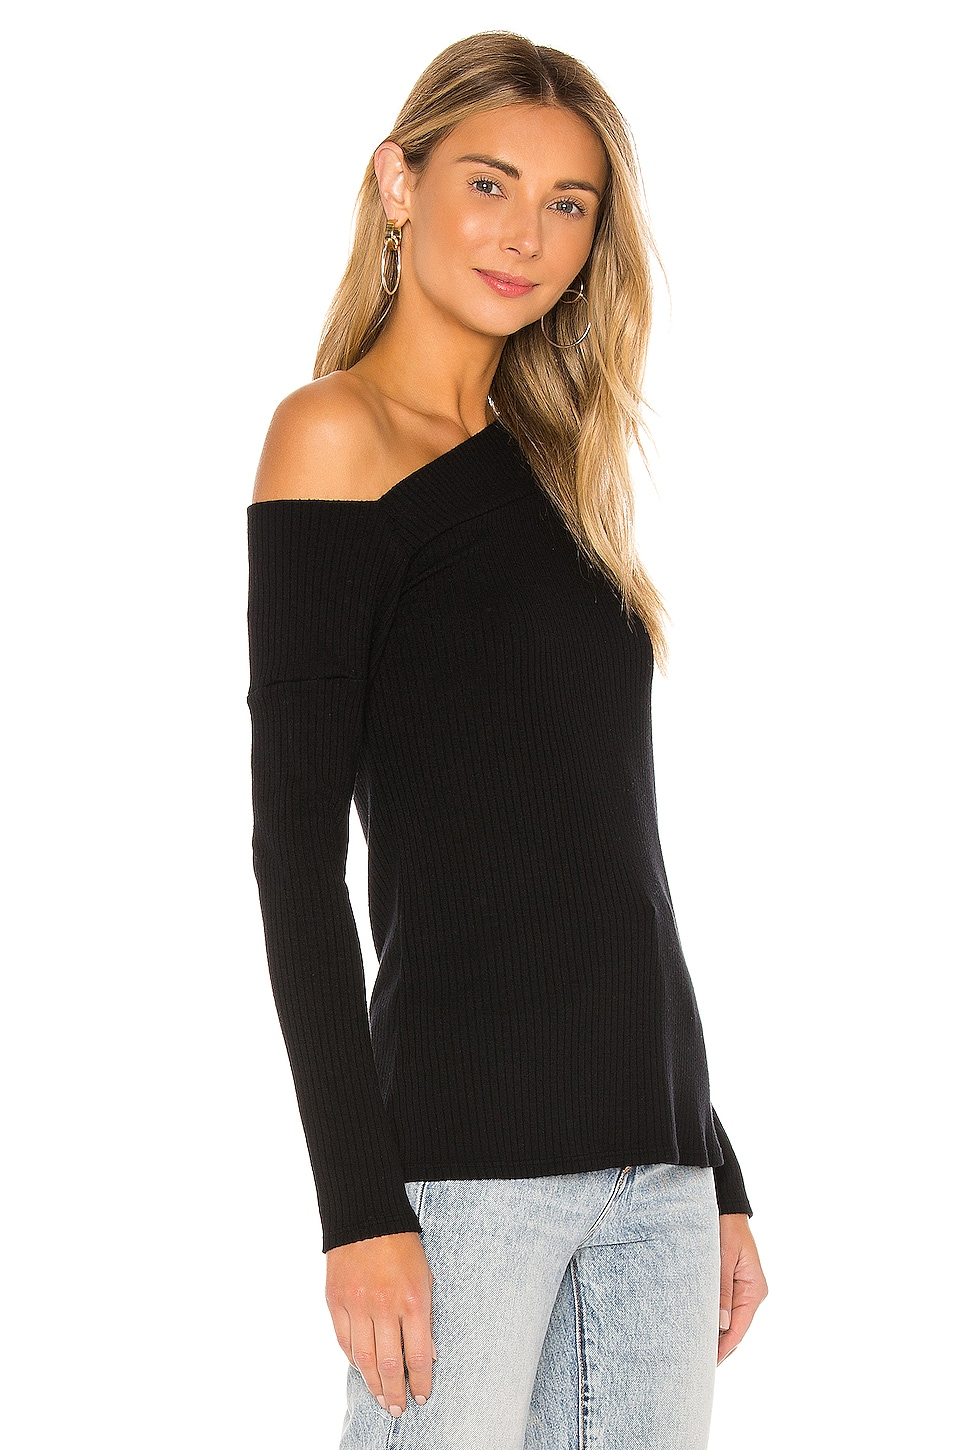 Maples Long Sleeve Top, view 2, click to view large image.